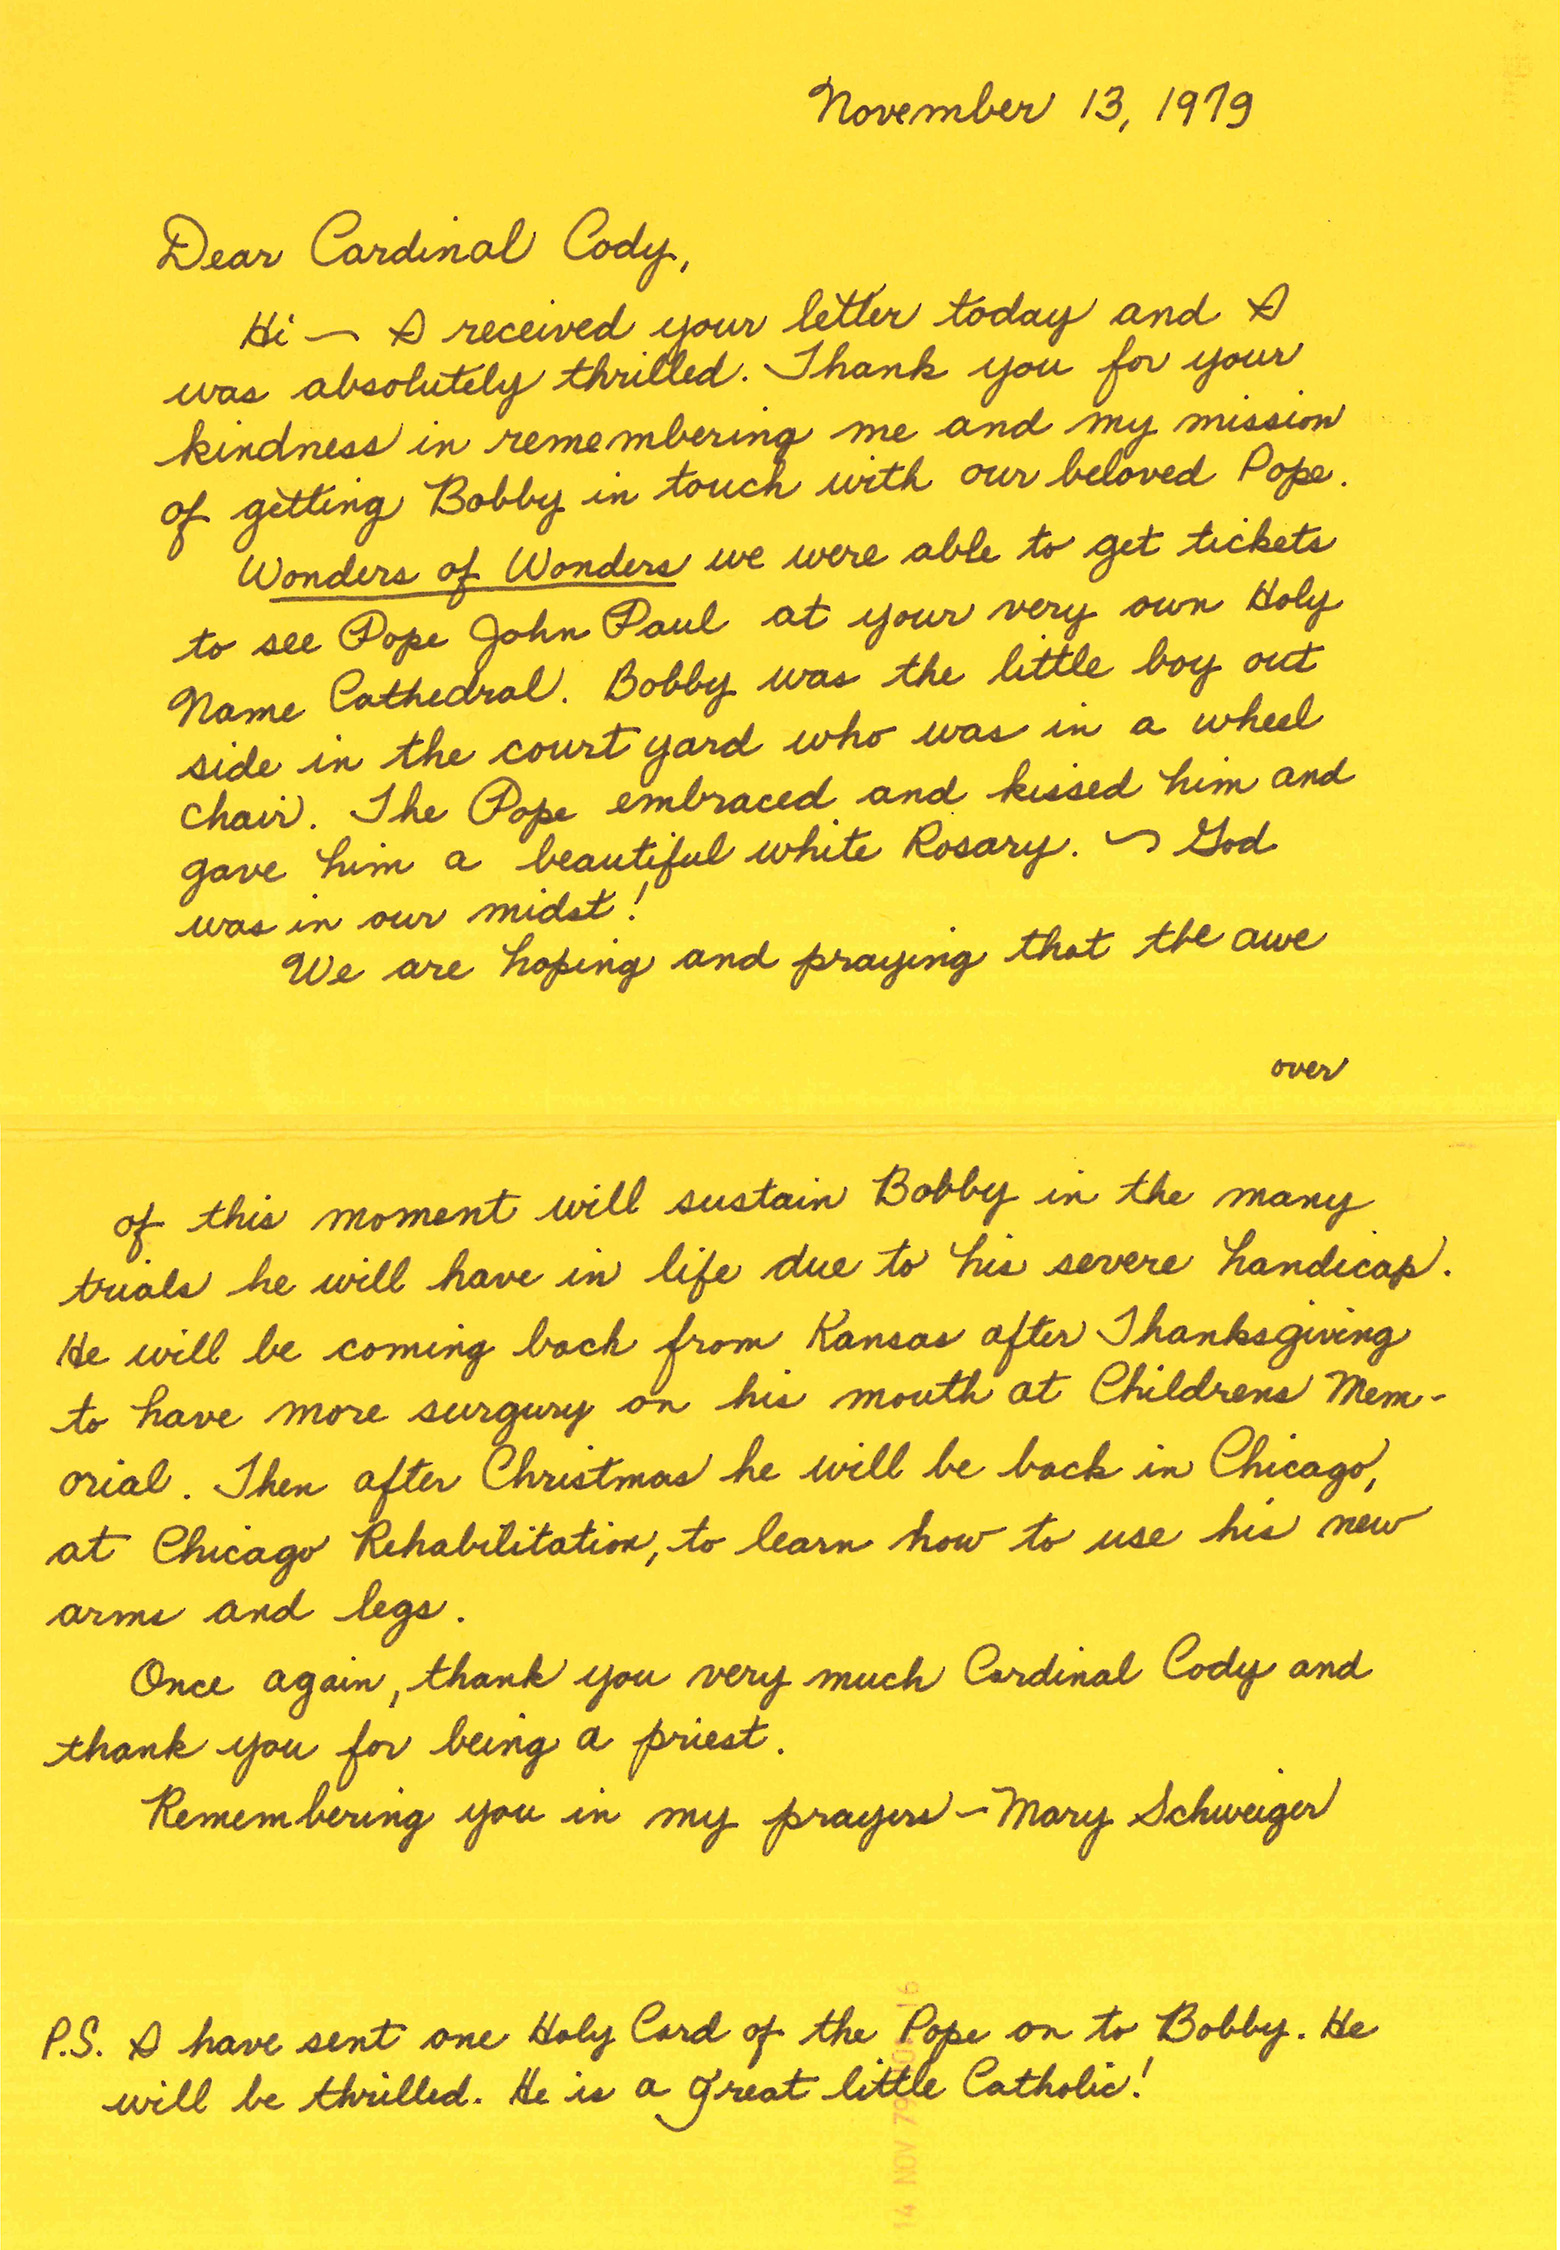 Mary Schweiger's card to Cardinal Cody